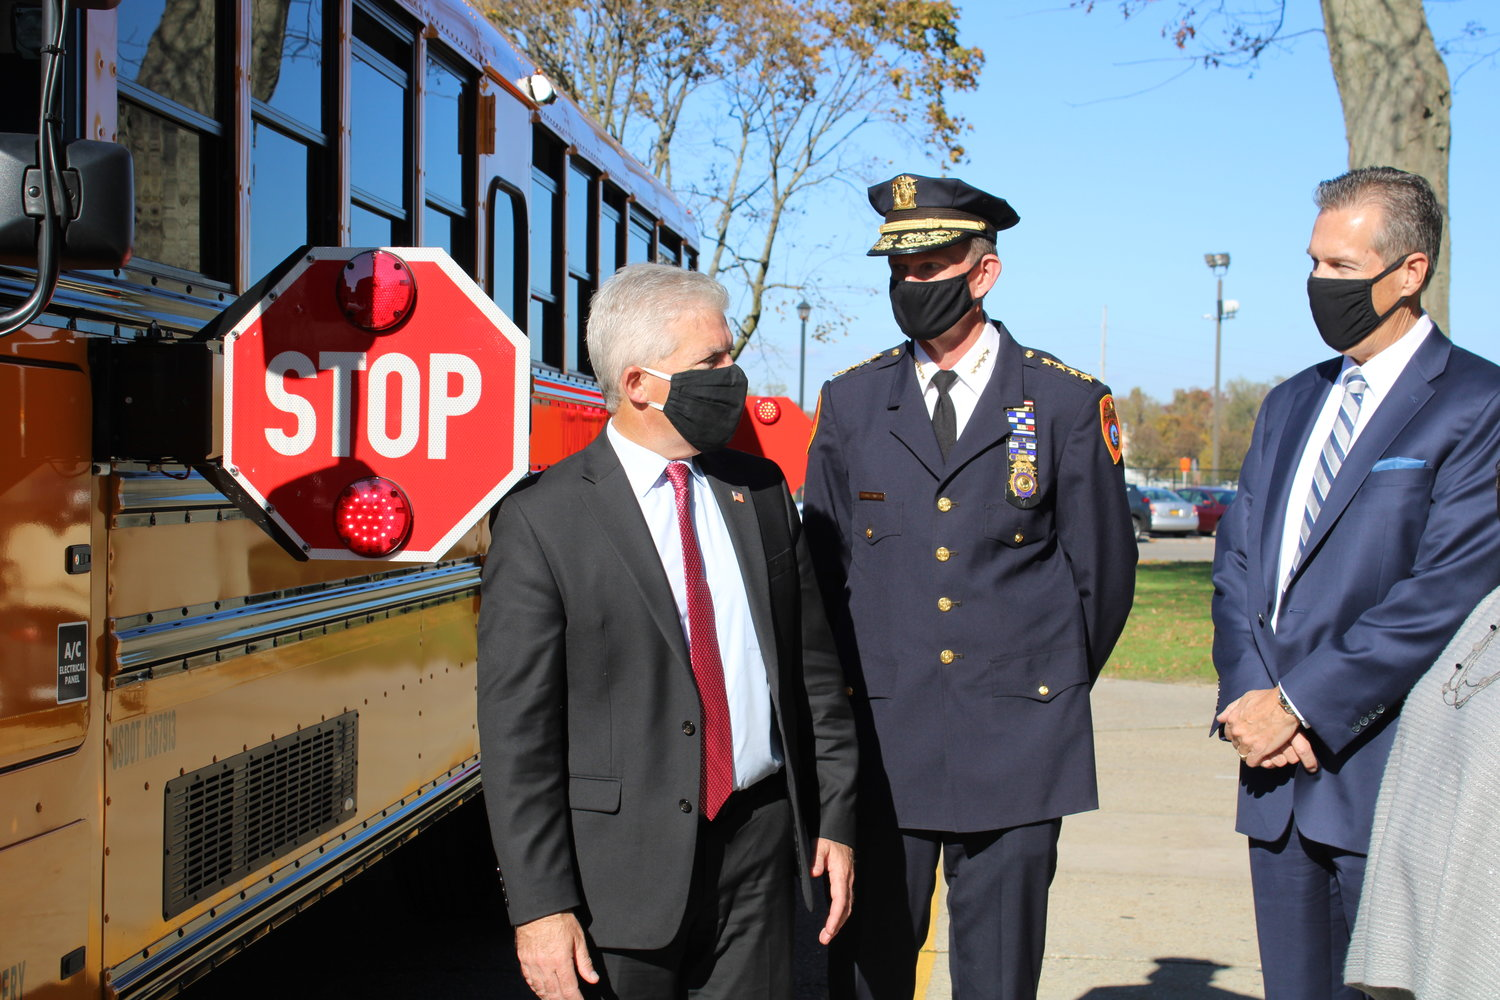 Suffolk County executive Steve Bellone announces a new partnership with BusPatrol America, Nov. 10, at Bay Shore's district building, which will implement stop-arm cameras to roughly 6,000 school buses in the county.